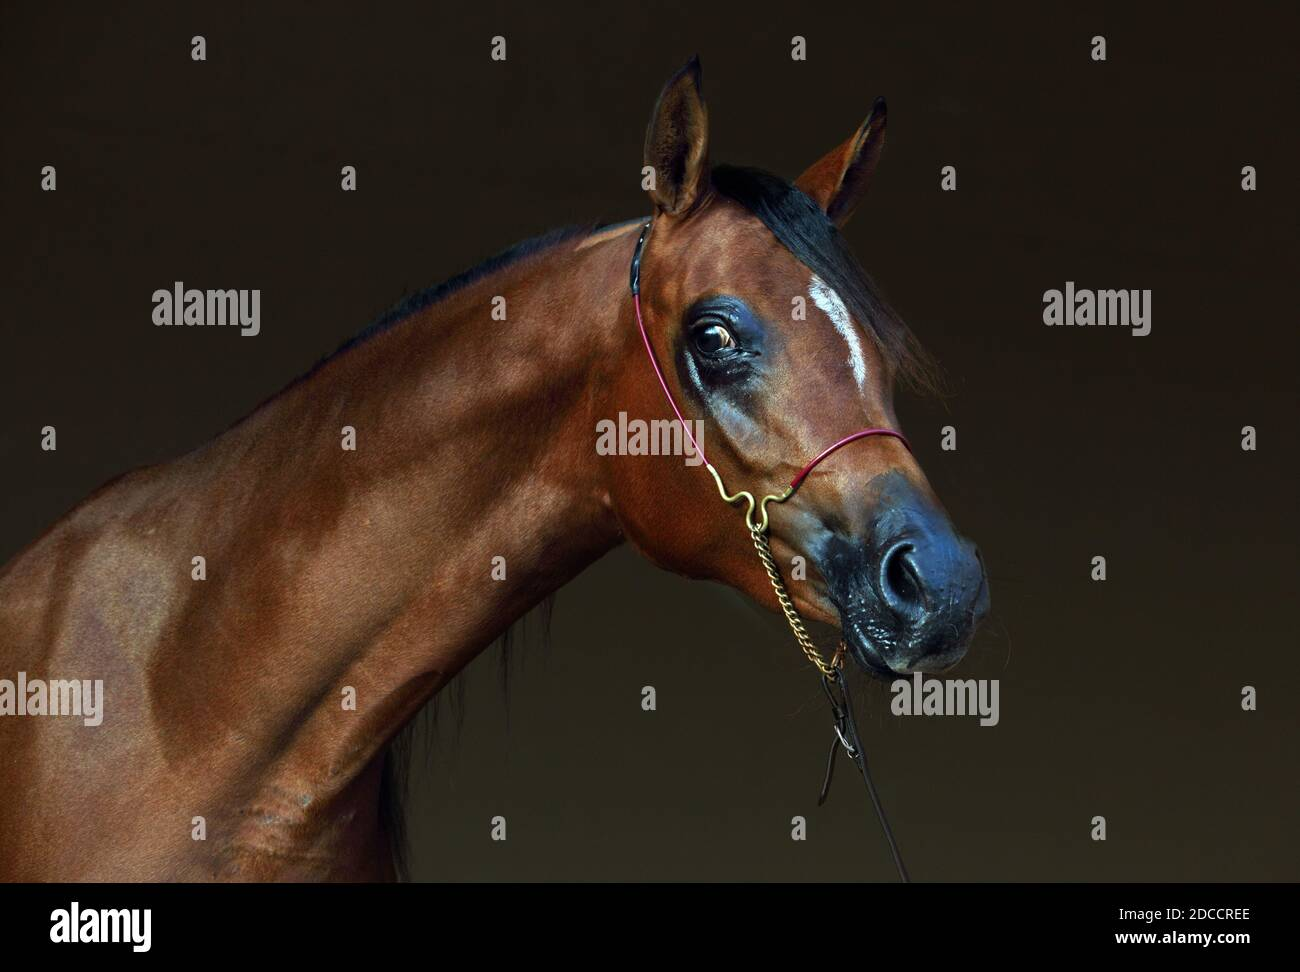 Page 2 Arabian Bridle High Resolution Stock Photography And Images Alamy